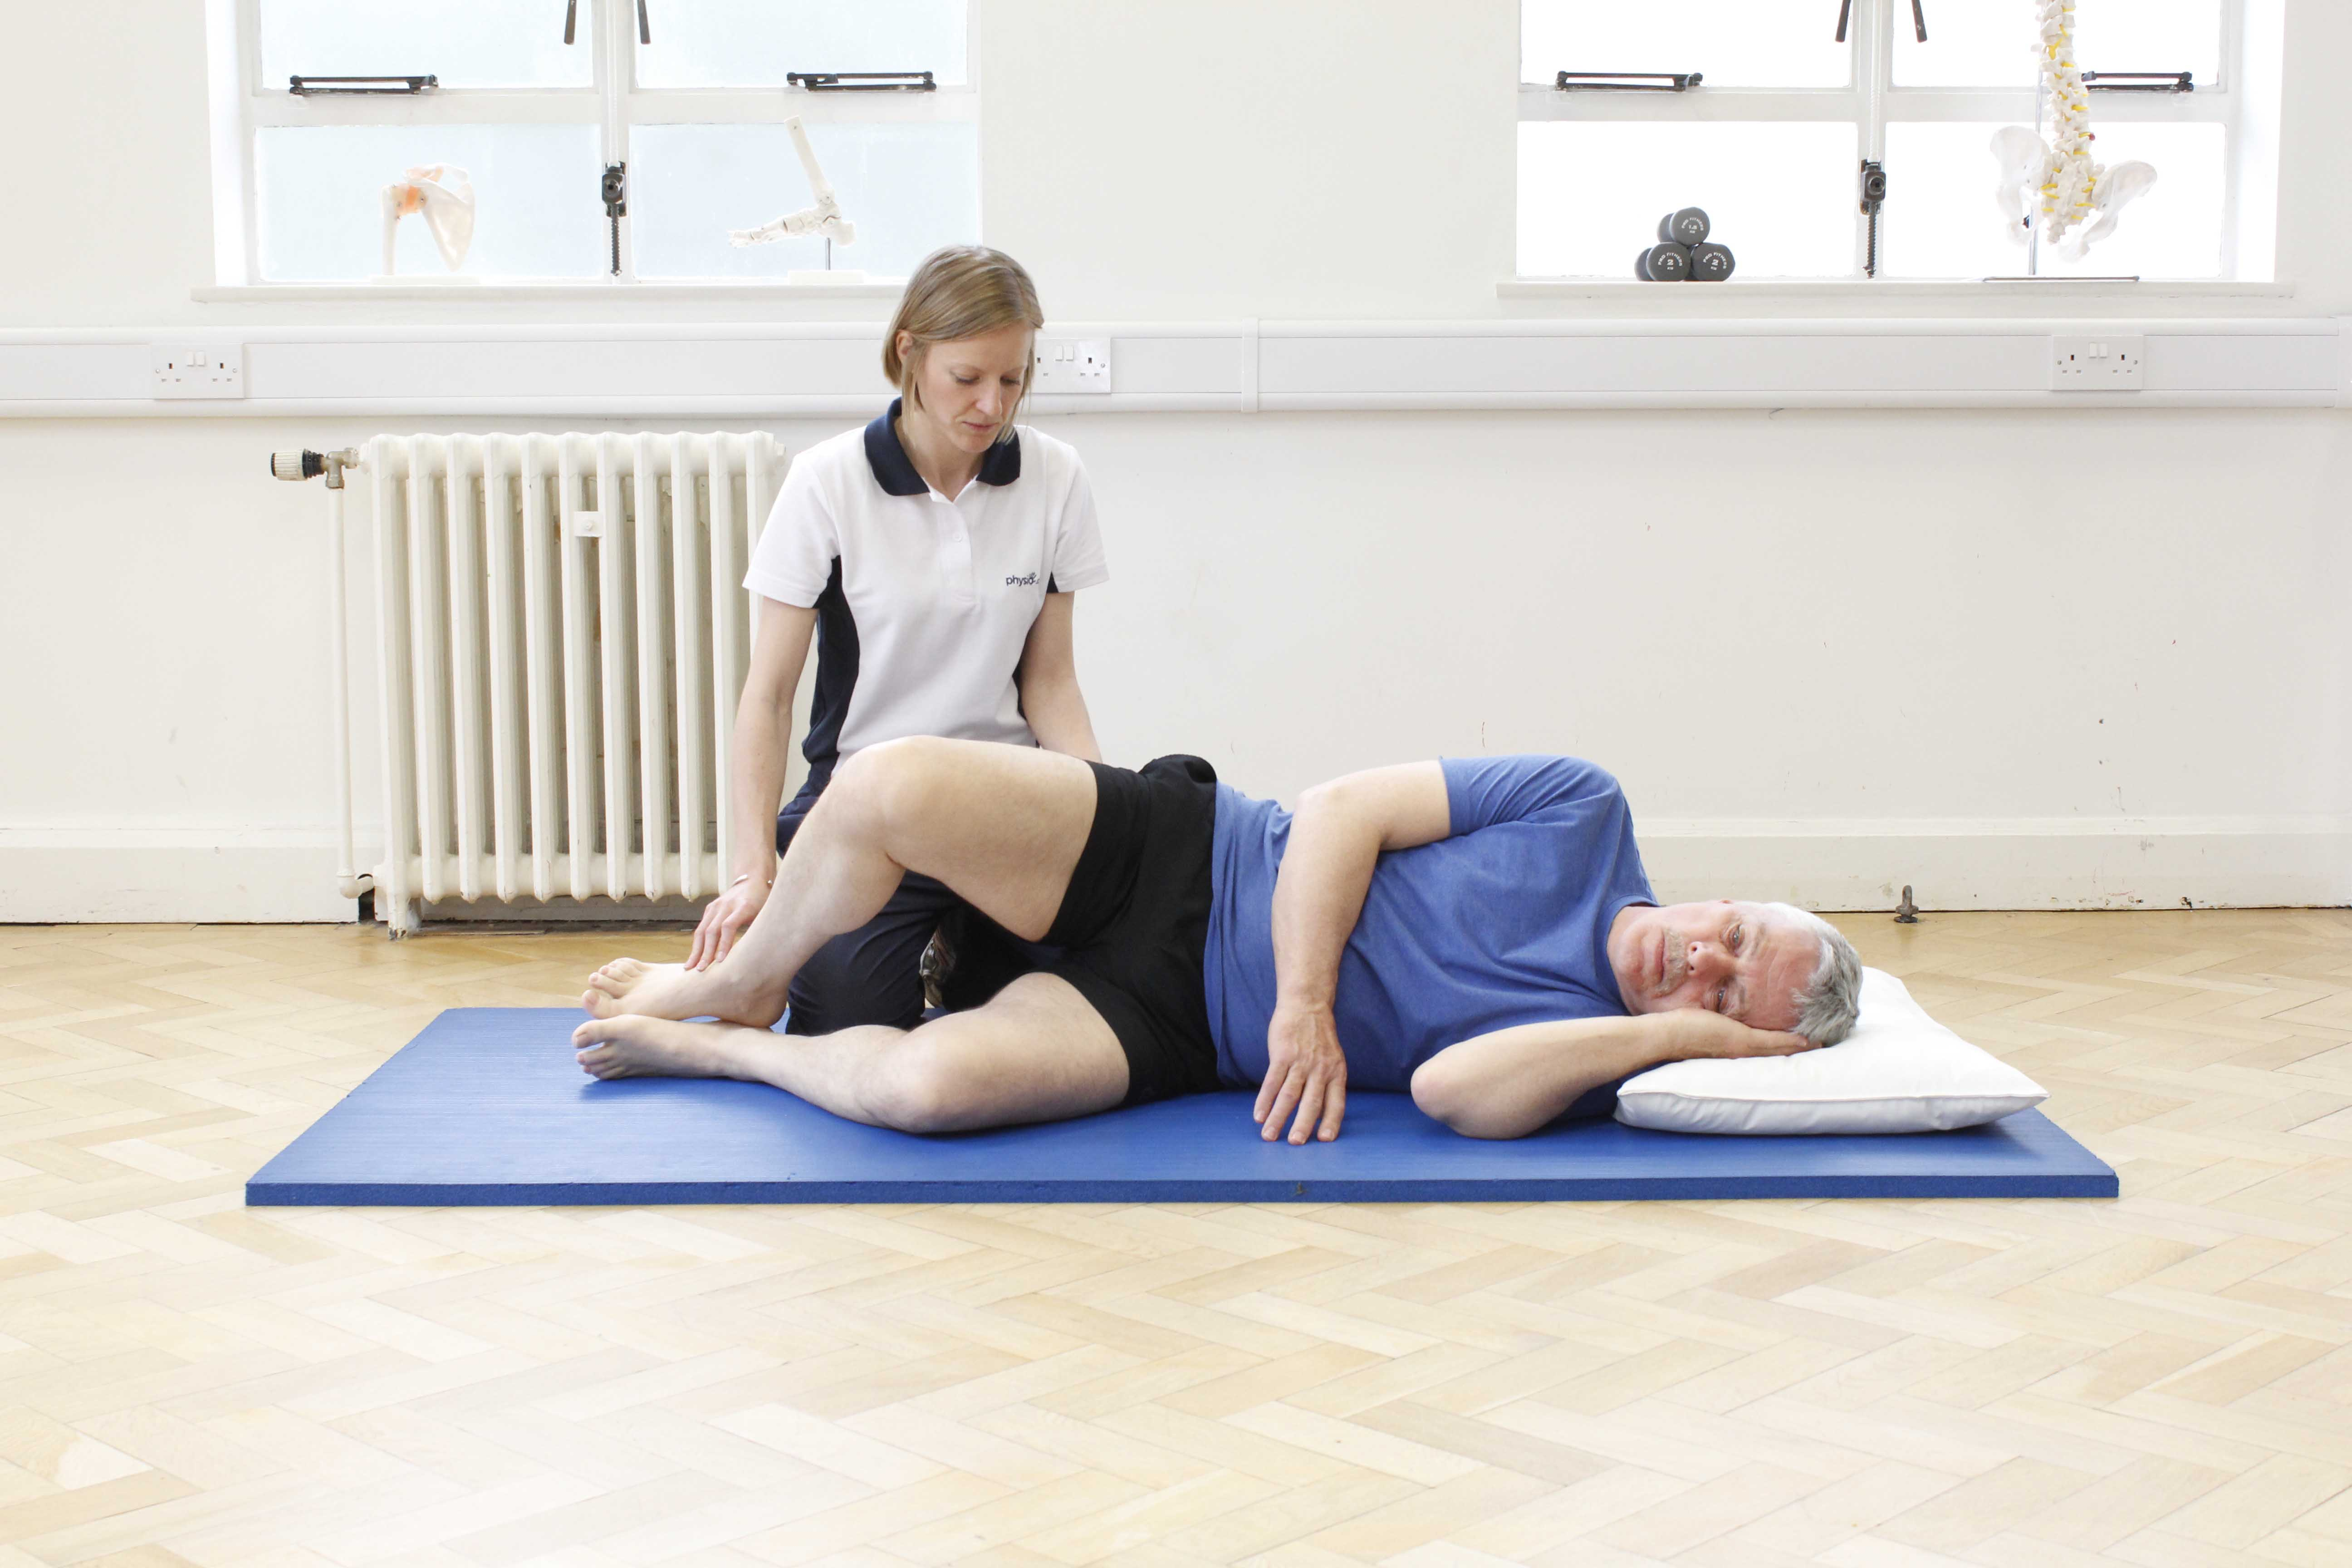 Neurological physiotherapist supervising a client performing 'Clams' to rehabilitate the hip and pelvic muscles